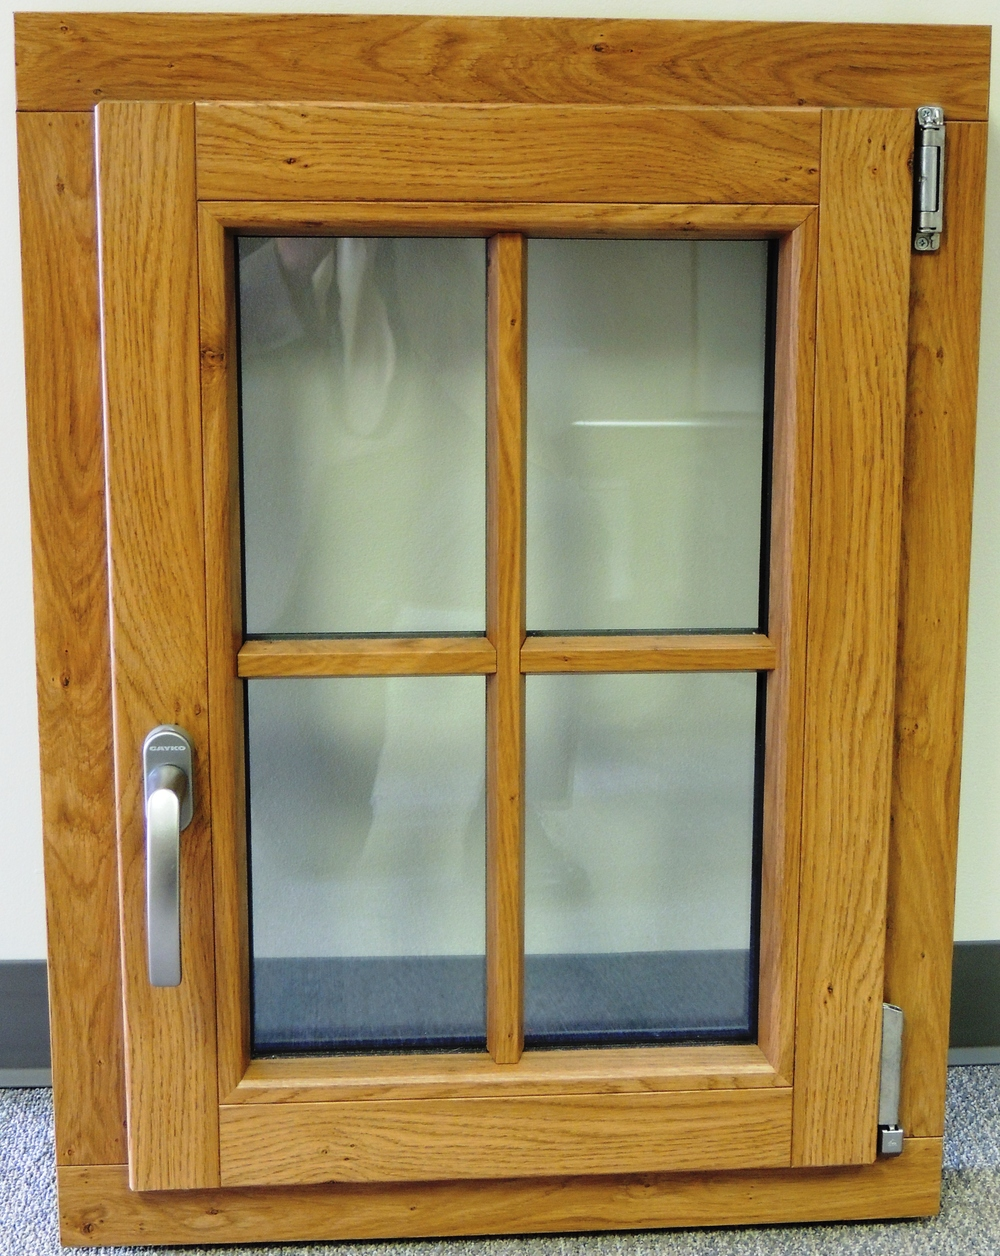 Upvc Windows That Look 100 Like Wood Henselstone Window